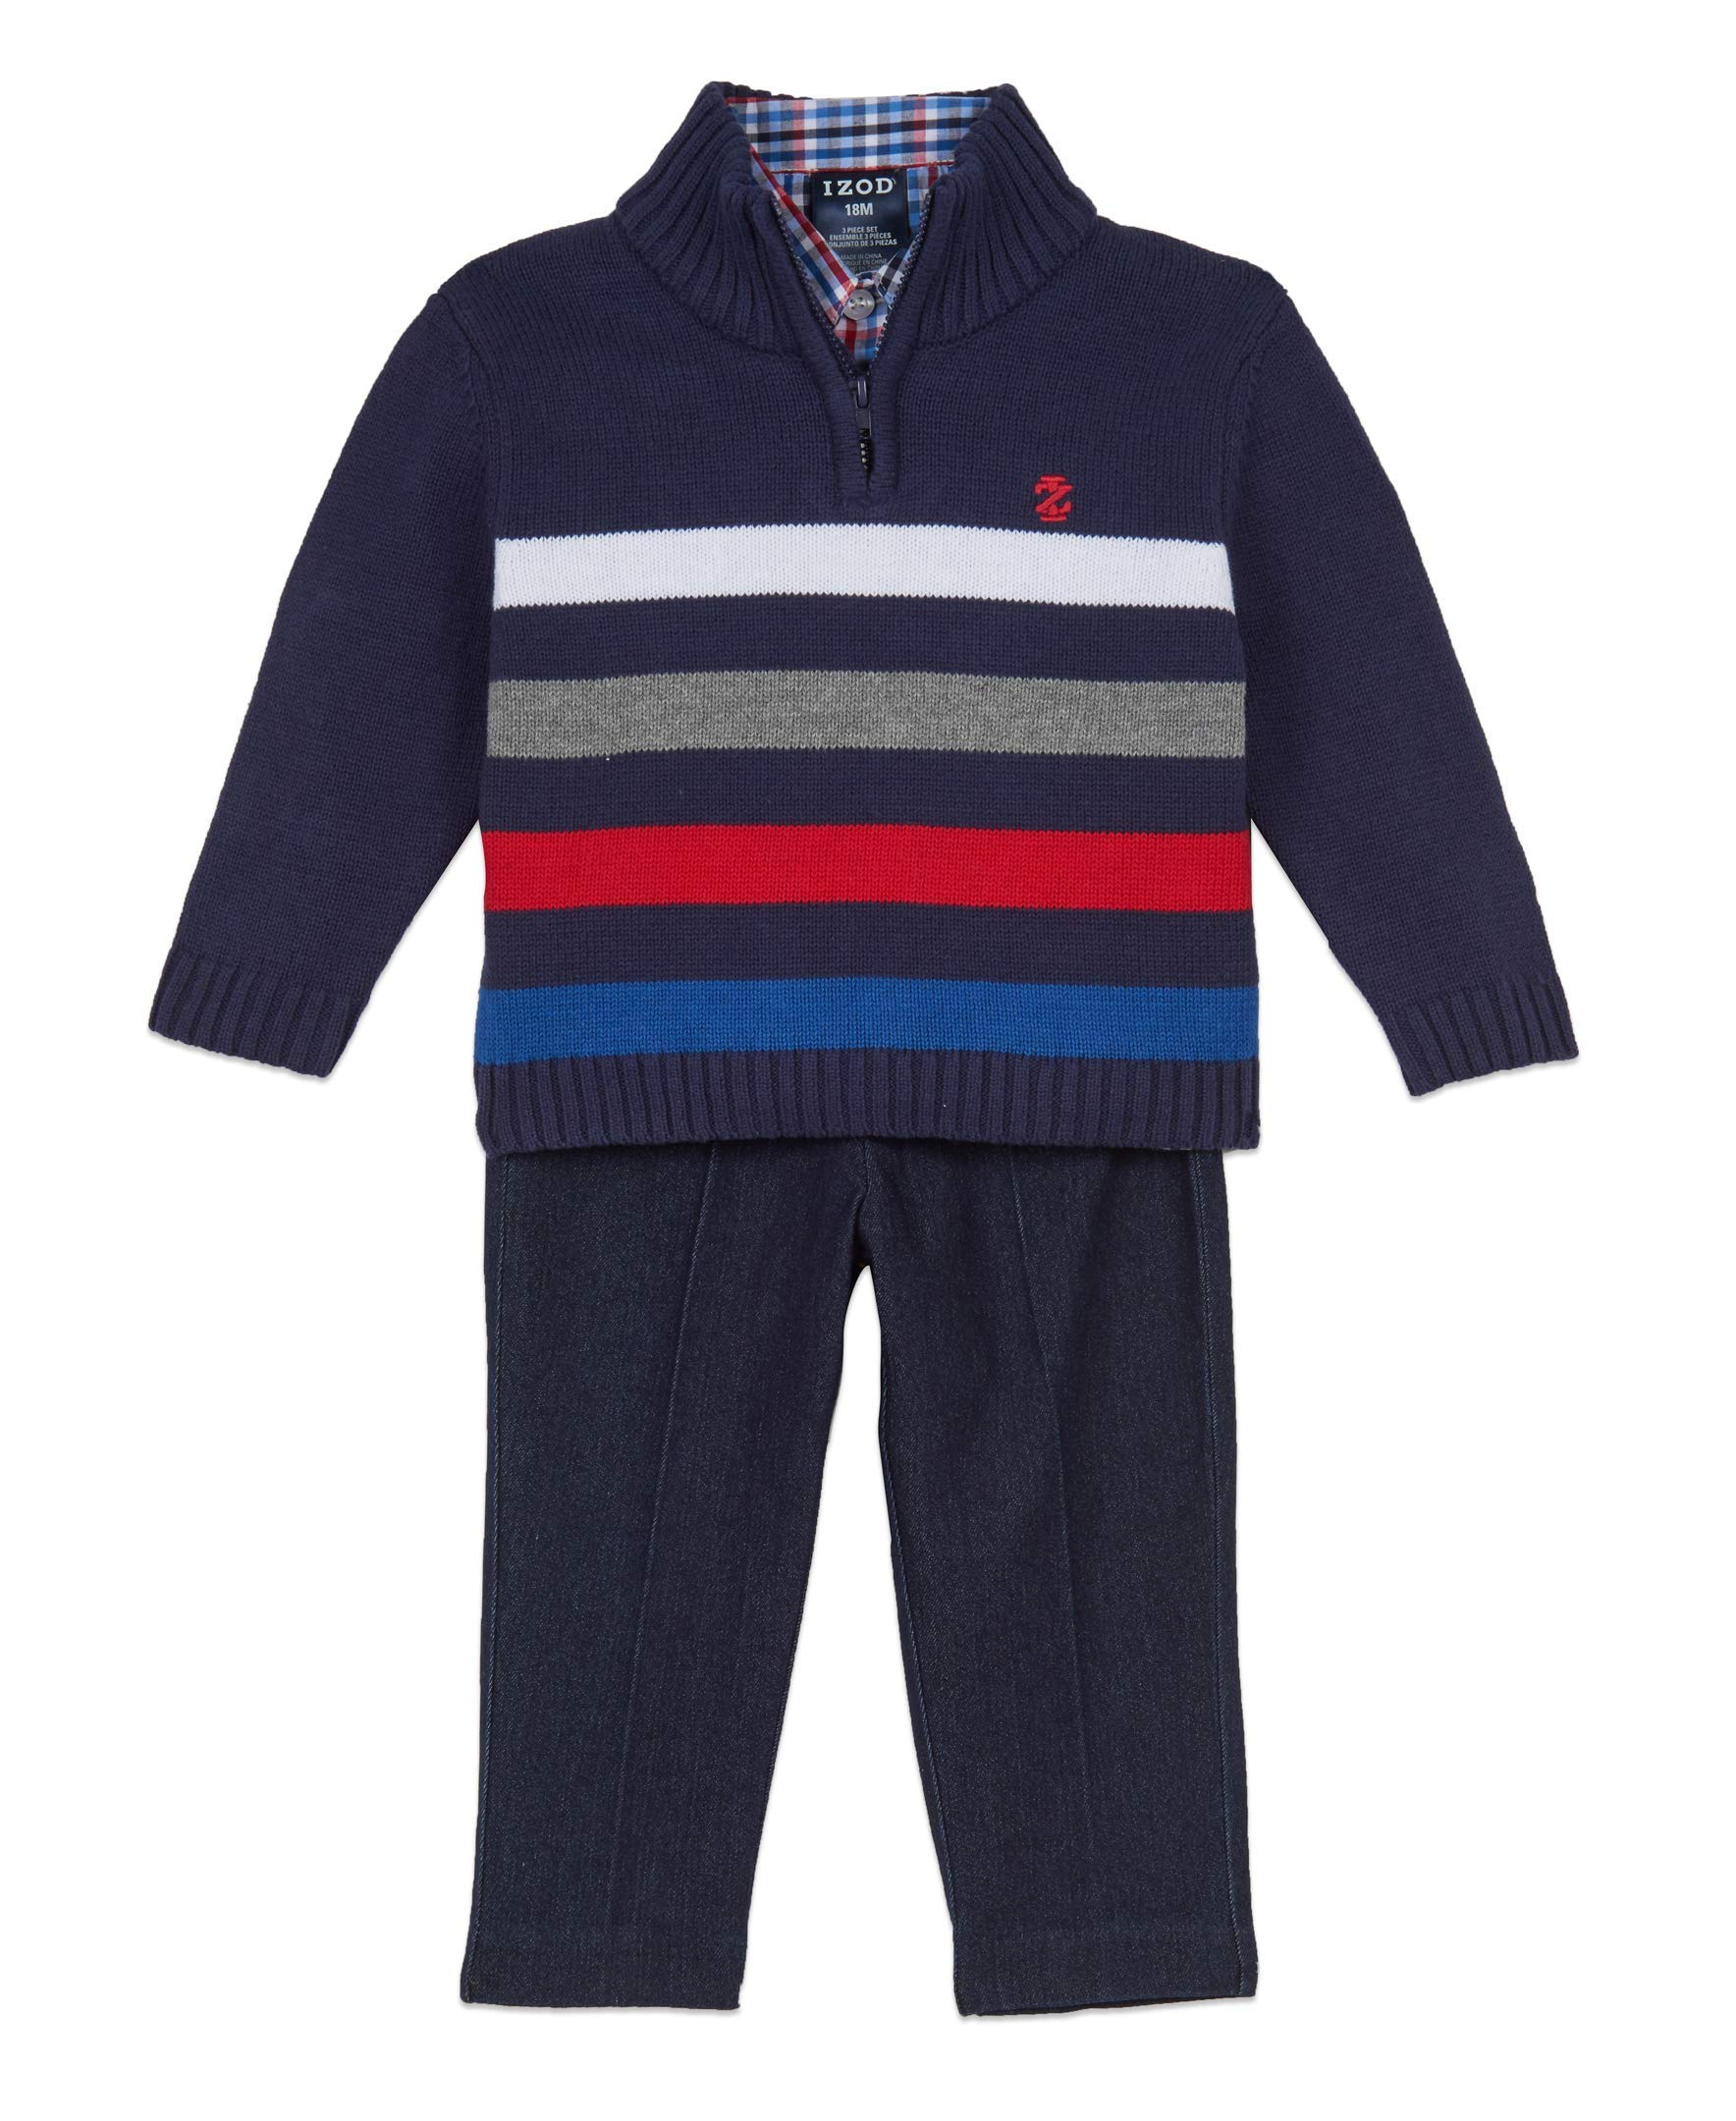 Izod Baby Boys 3-Piece Sweater, Dress Shirt, and Pants Set